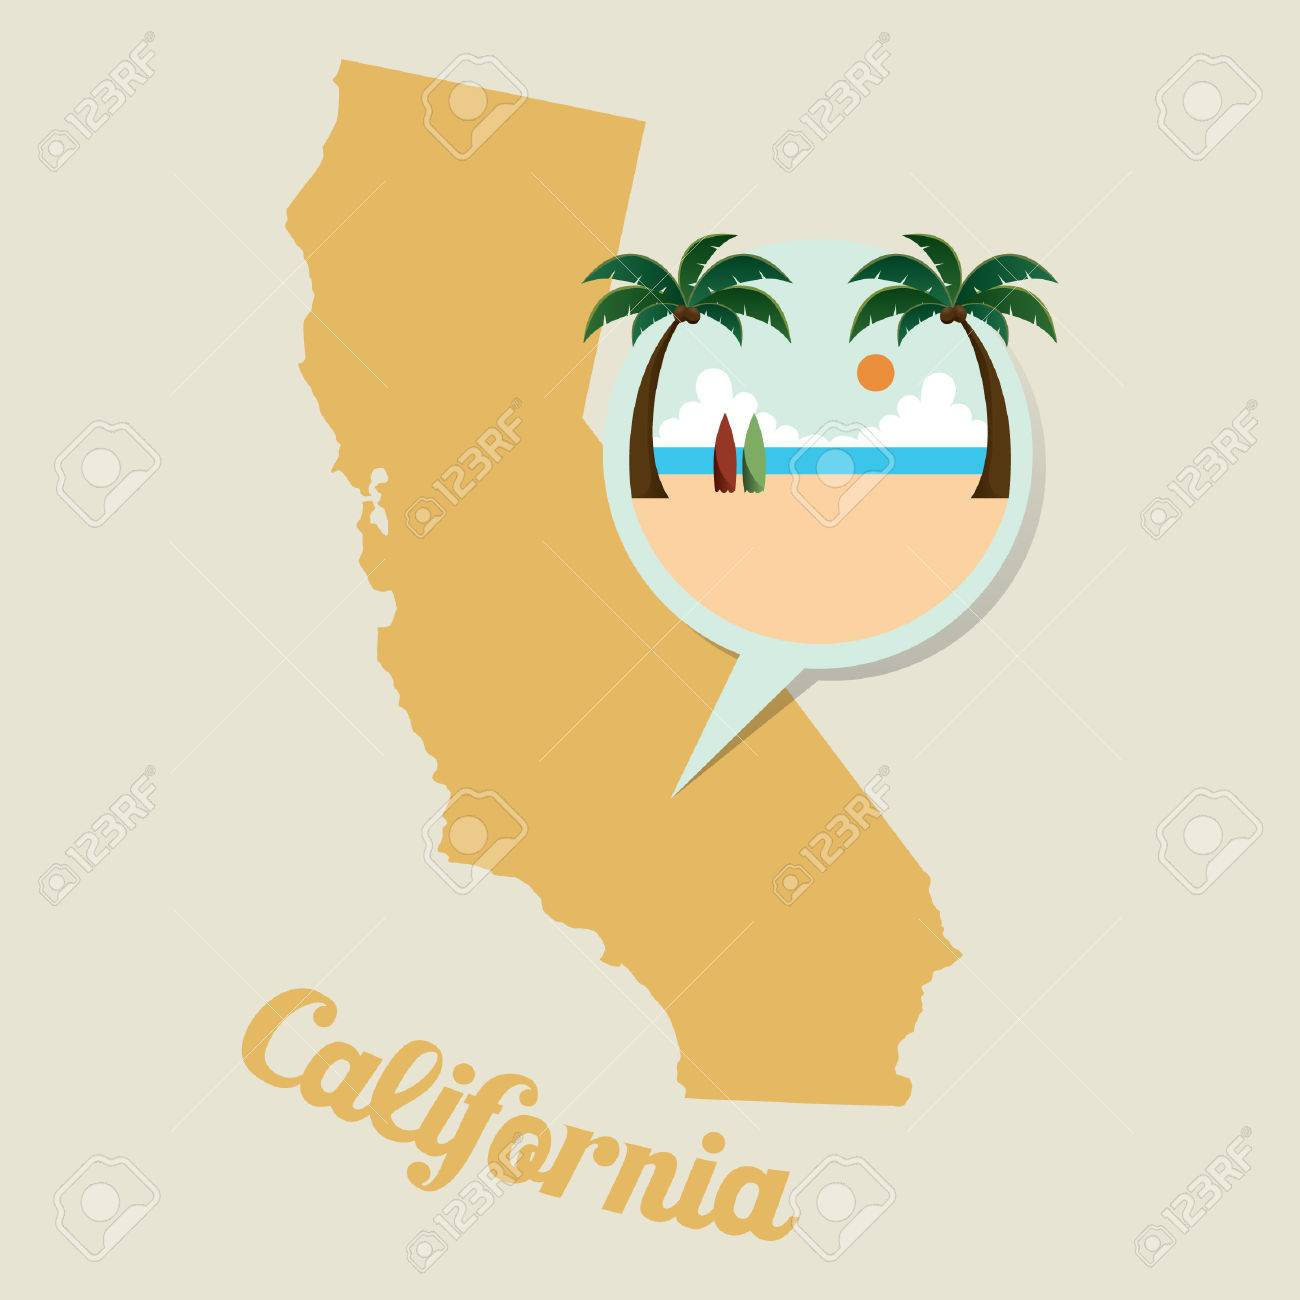 California Map Cartoon.California Map With Beach Icon Royalty Free Cliparts Vectors And